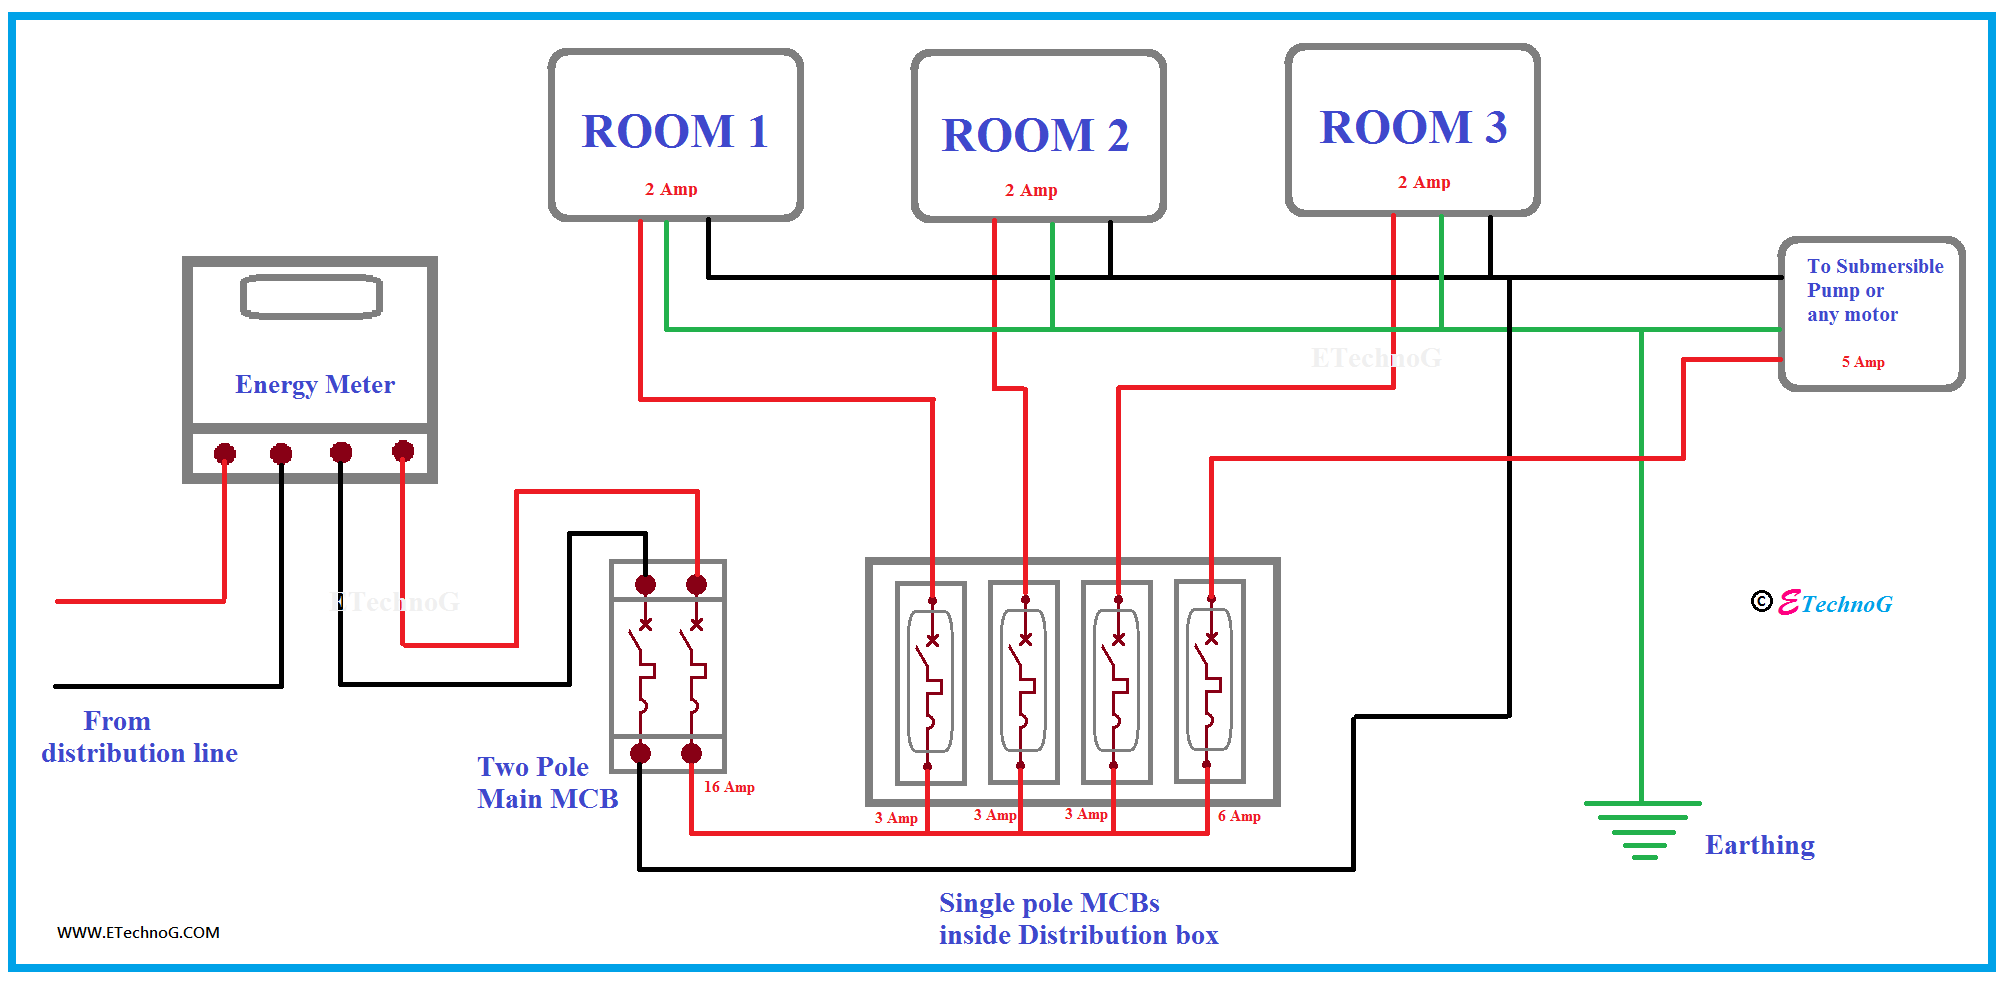 Wiring Diagram Of Electrical Power Distribution In House In 2020 Electrical Circuit Diagram Home Electrical Wiring House Wiring